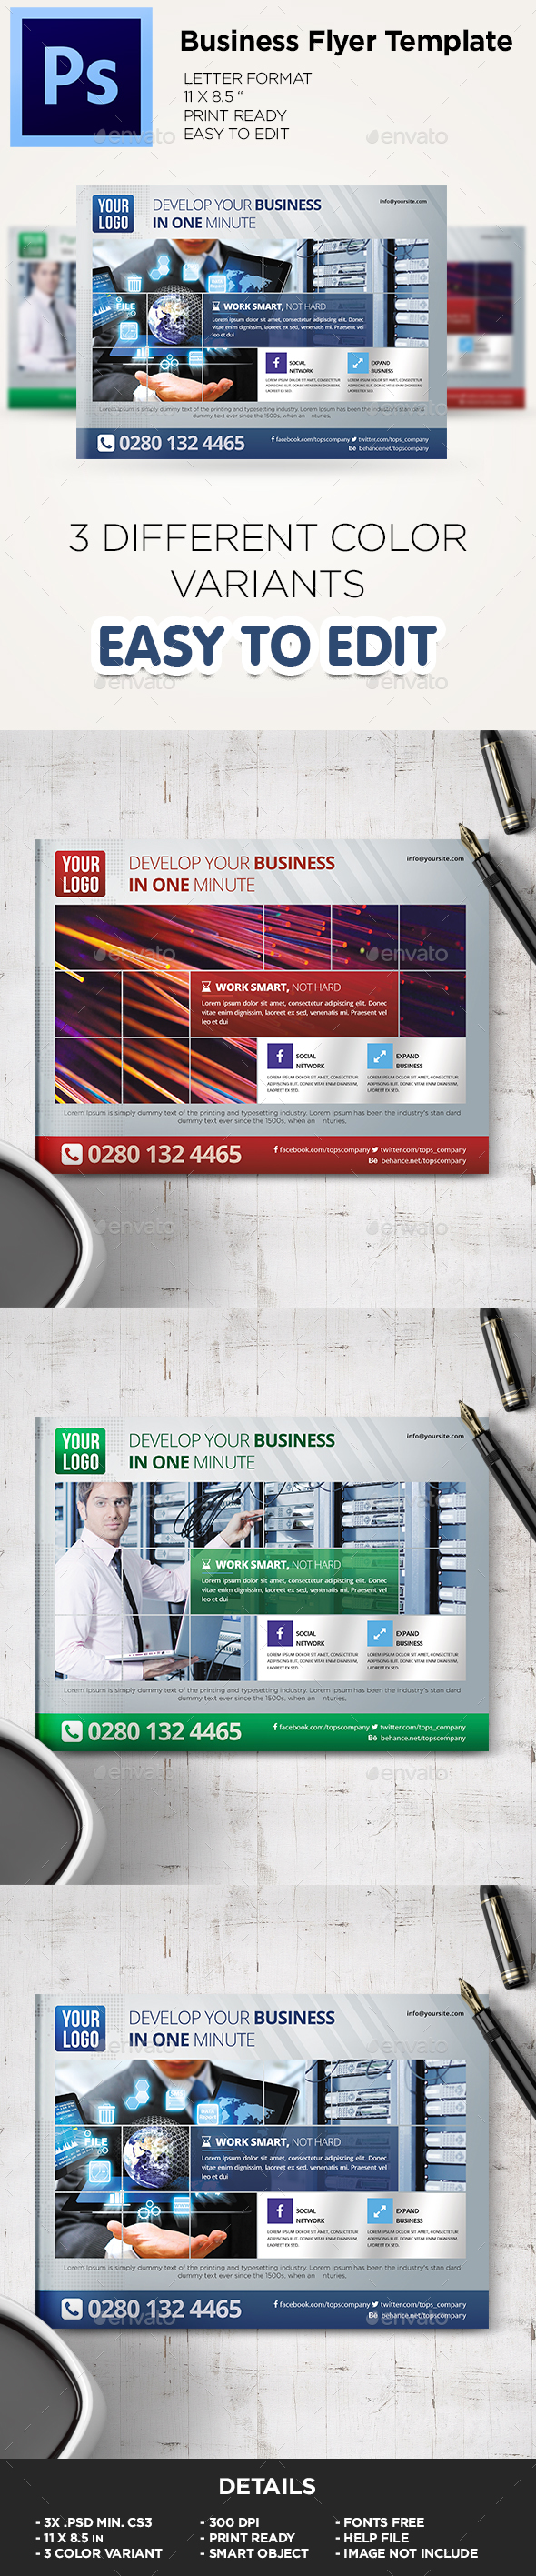 Business Flyer Template / Coorporate Flyer - Flyers Print Templates